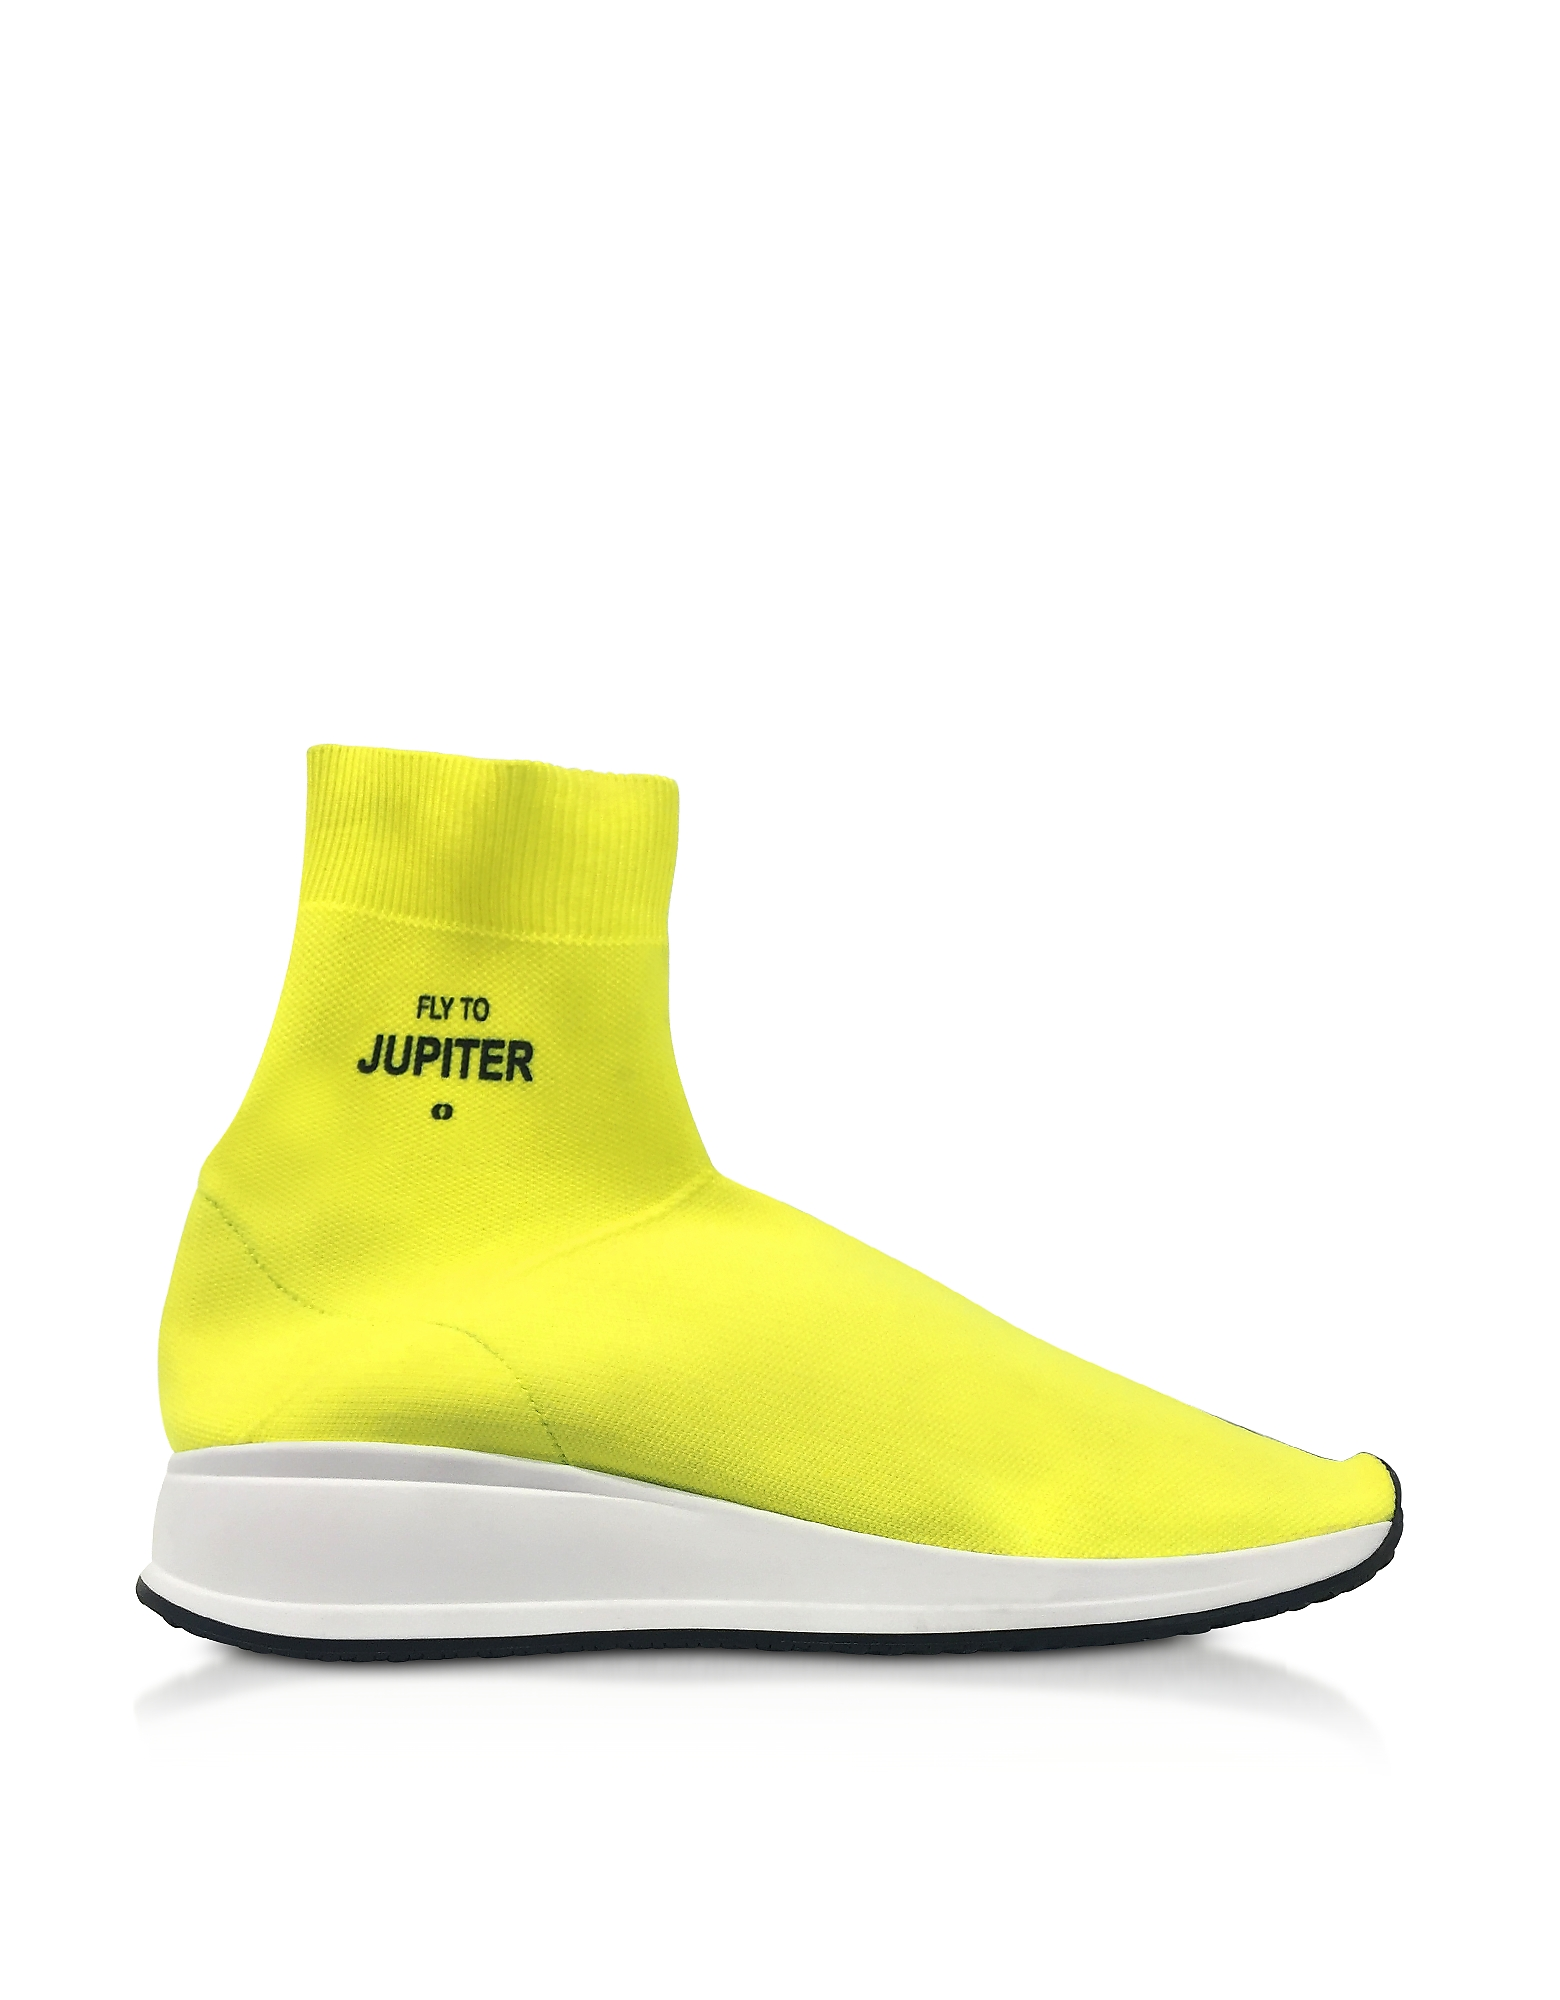 Joshua Sanders Shoes, Fly To Jupiter Neon Yellow Nylon Sock Sneakers